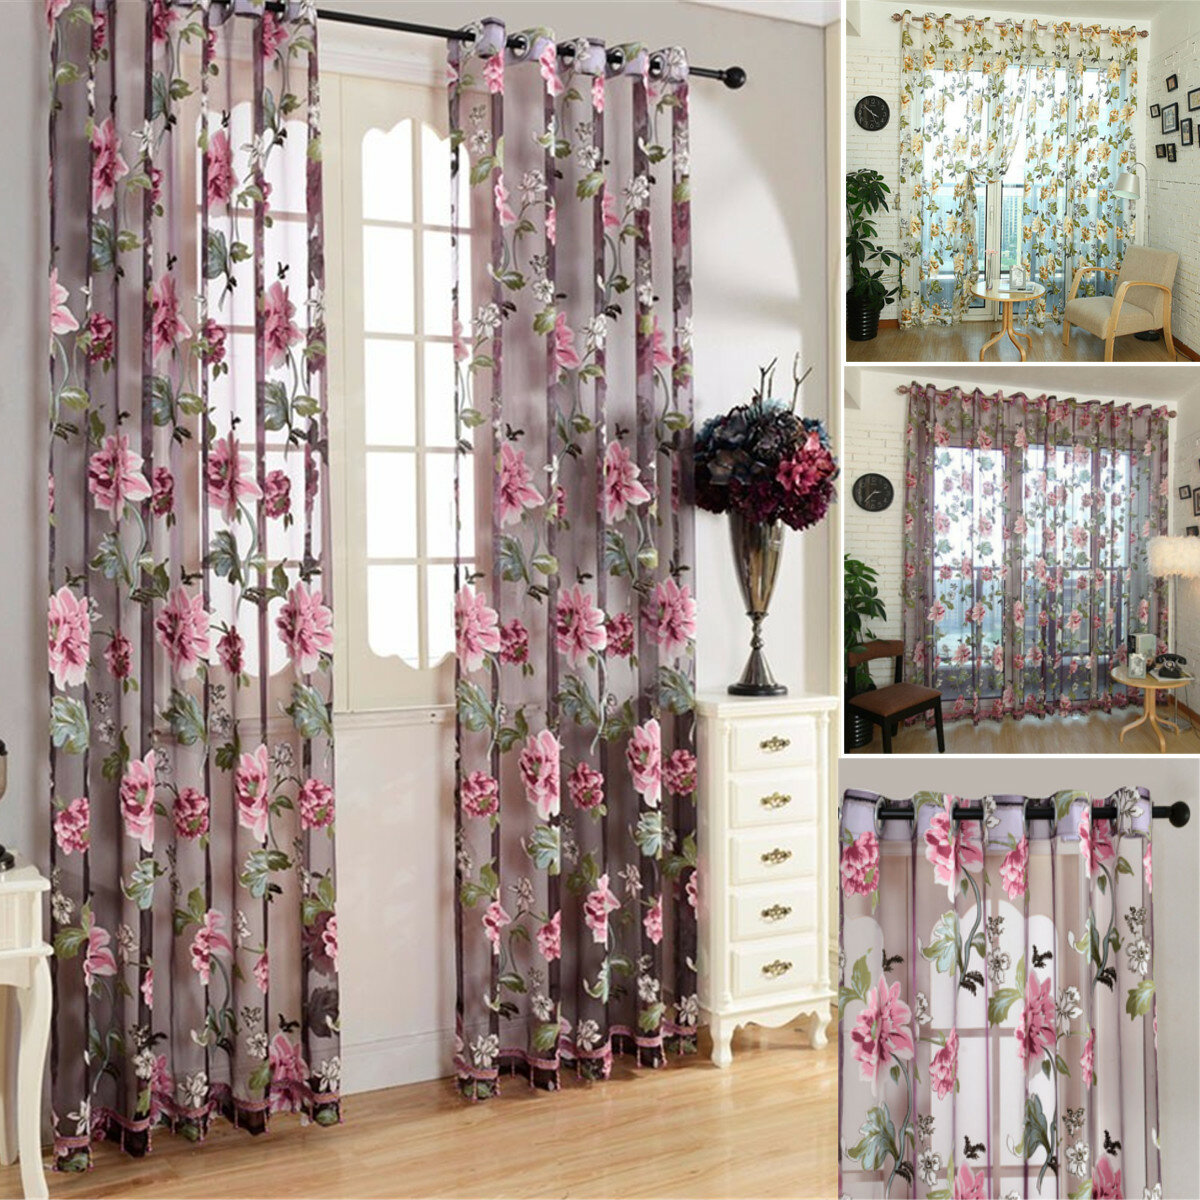 Honana Modern Sheer Curtains for Living Room Floral Tulle Window Treatments Bedroom Flower Panel Drapes for Girl Room  - buy with discount